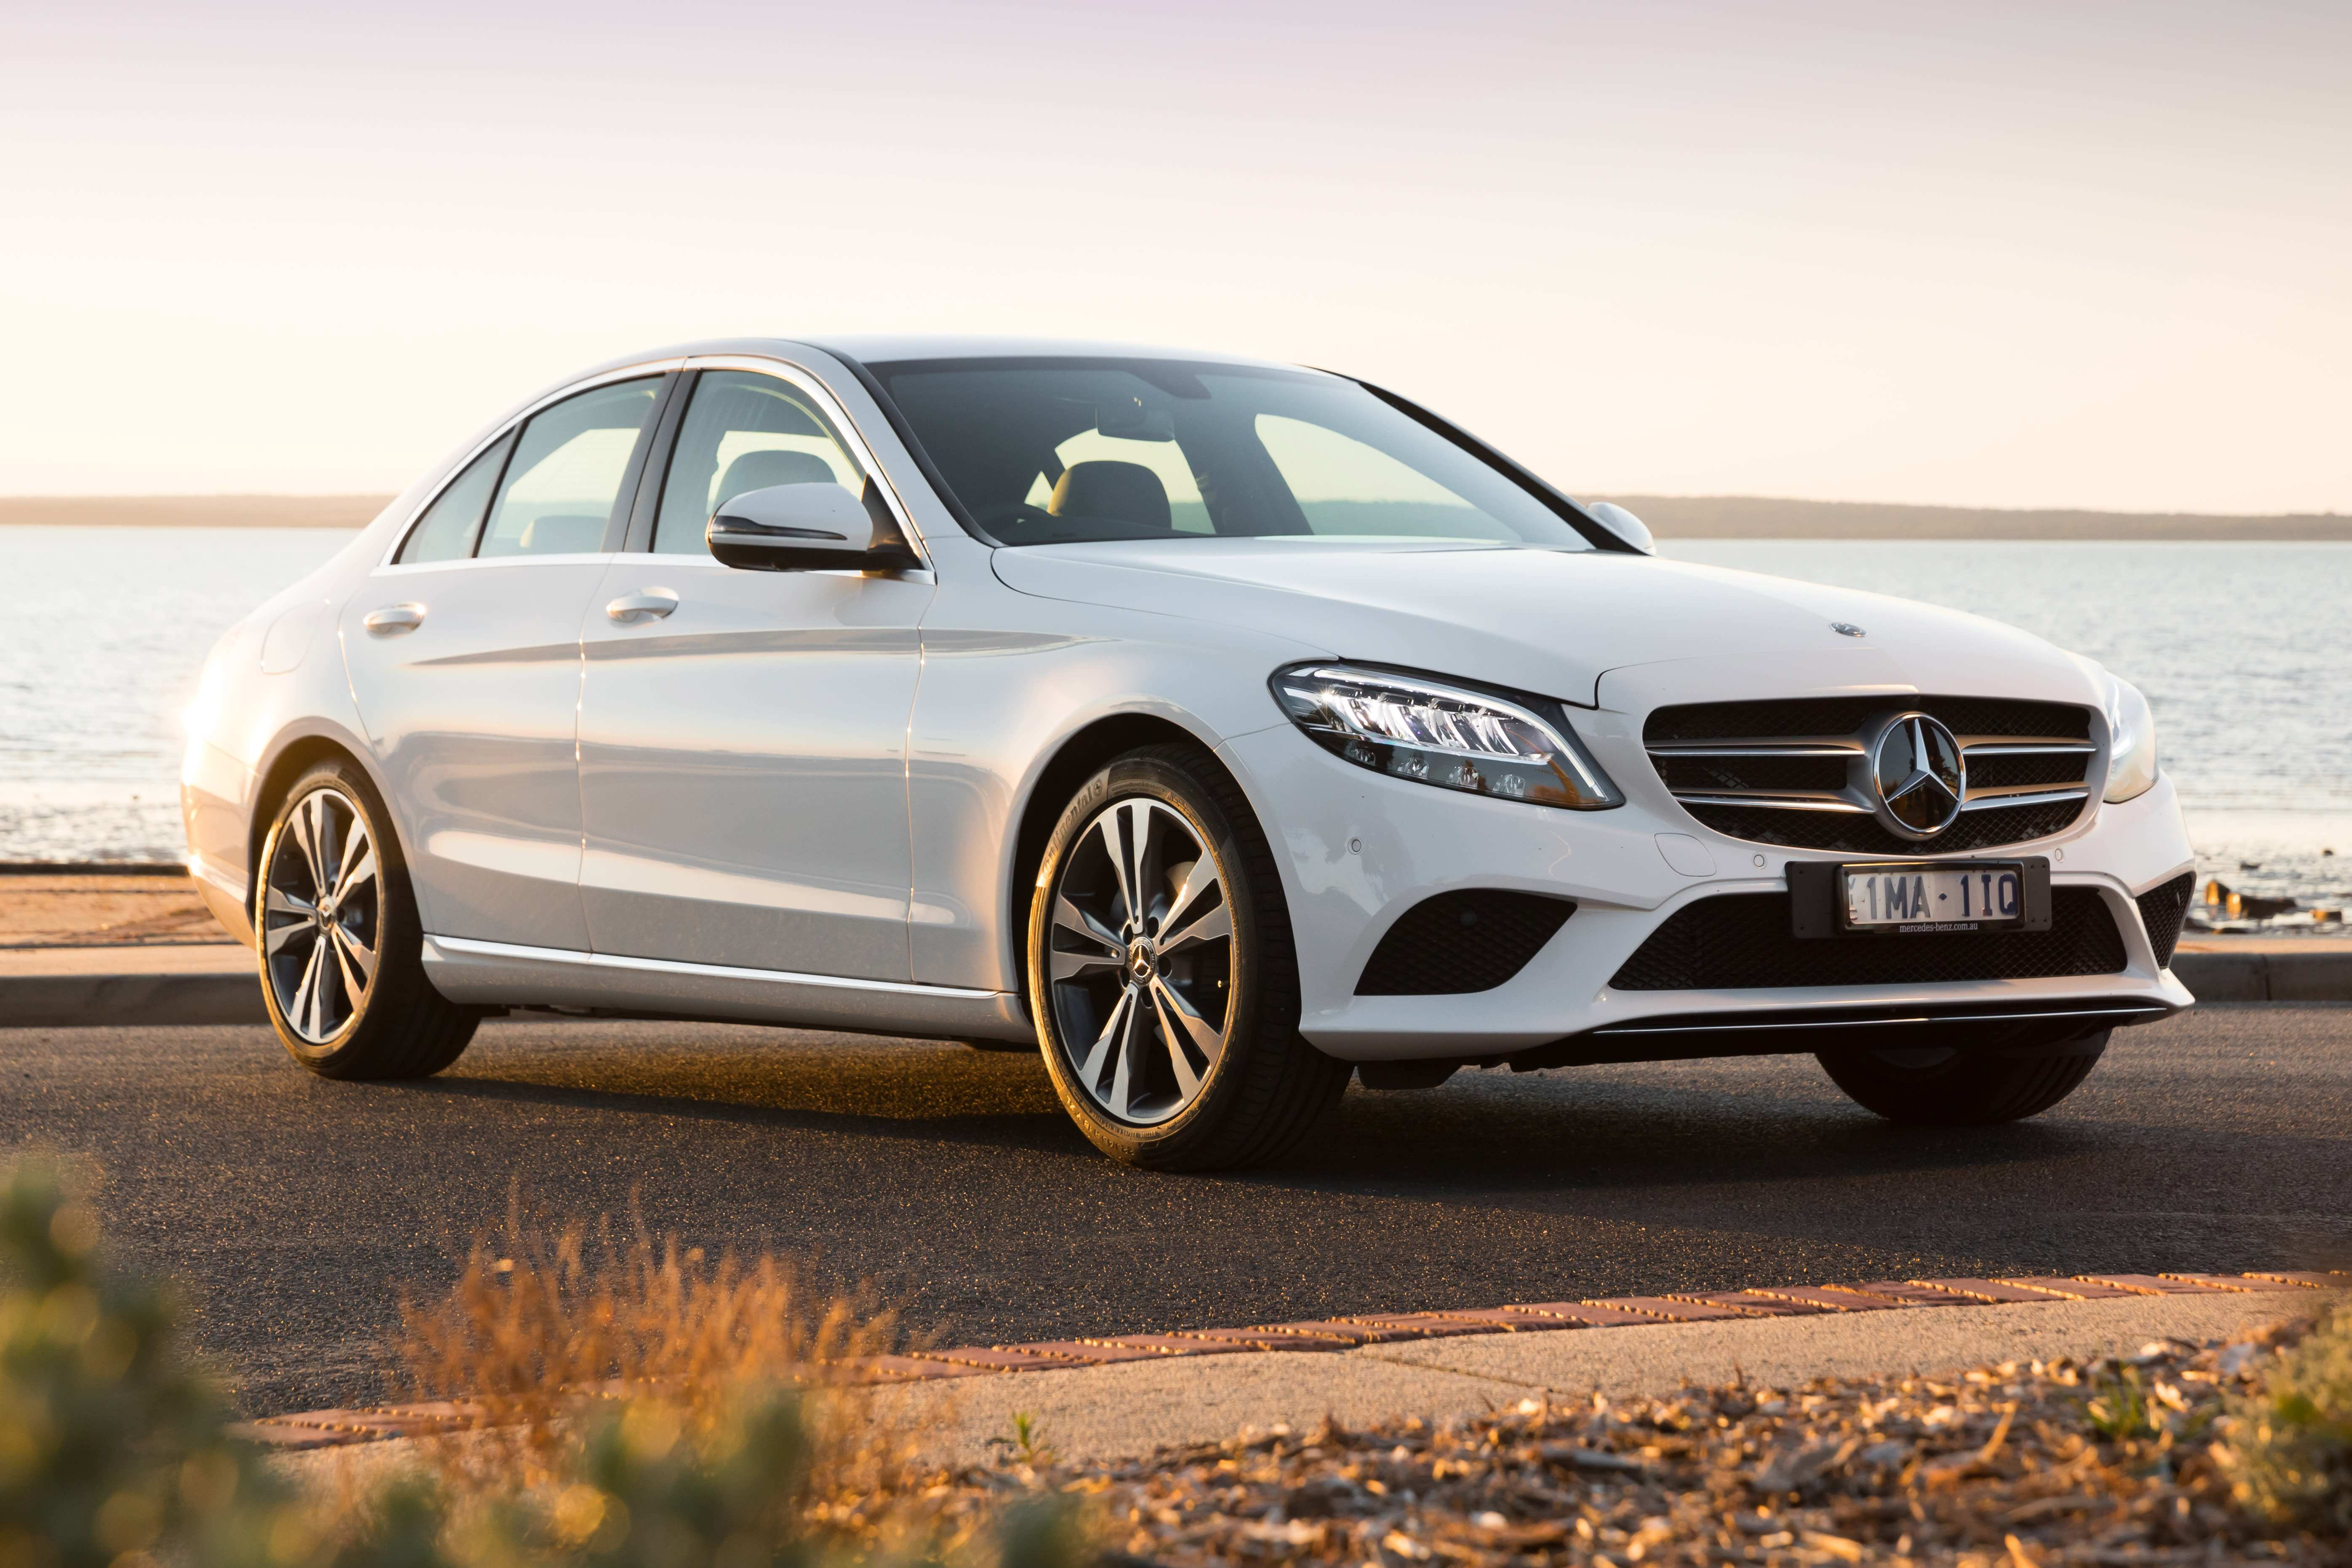 68 Concept of Best Mercedes Drivers 2019 Exterior Prices with Best Mercedes Drivers 2019 Exterior